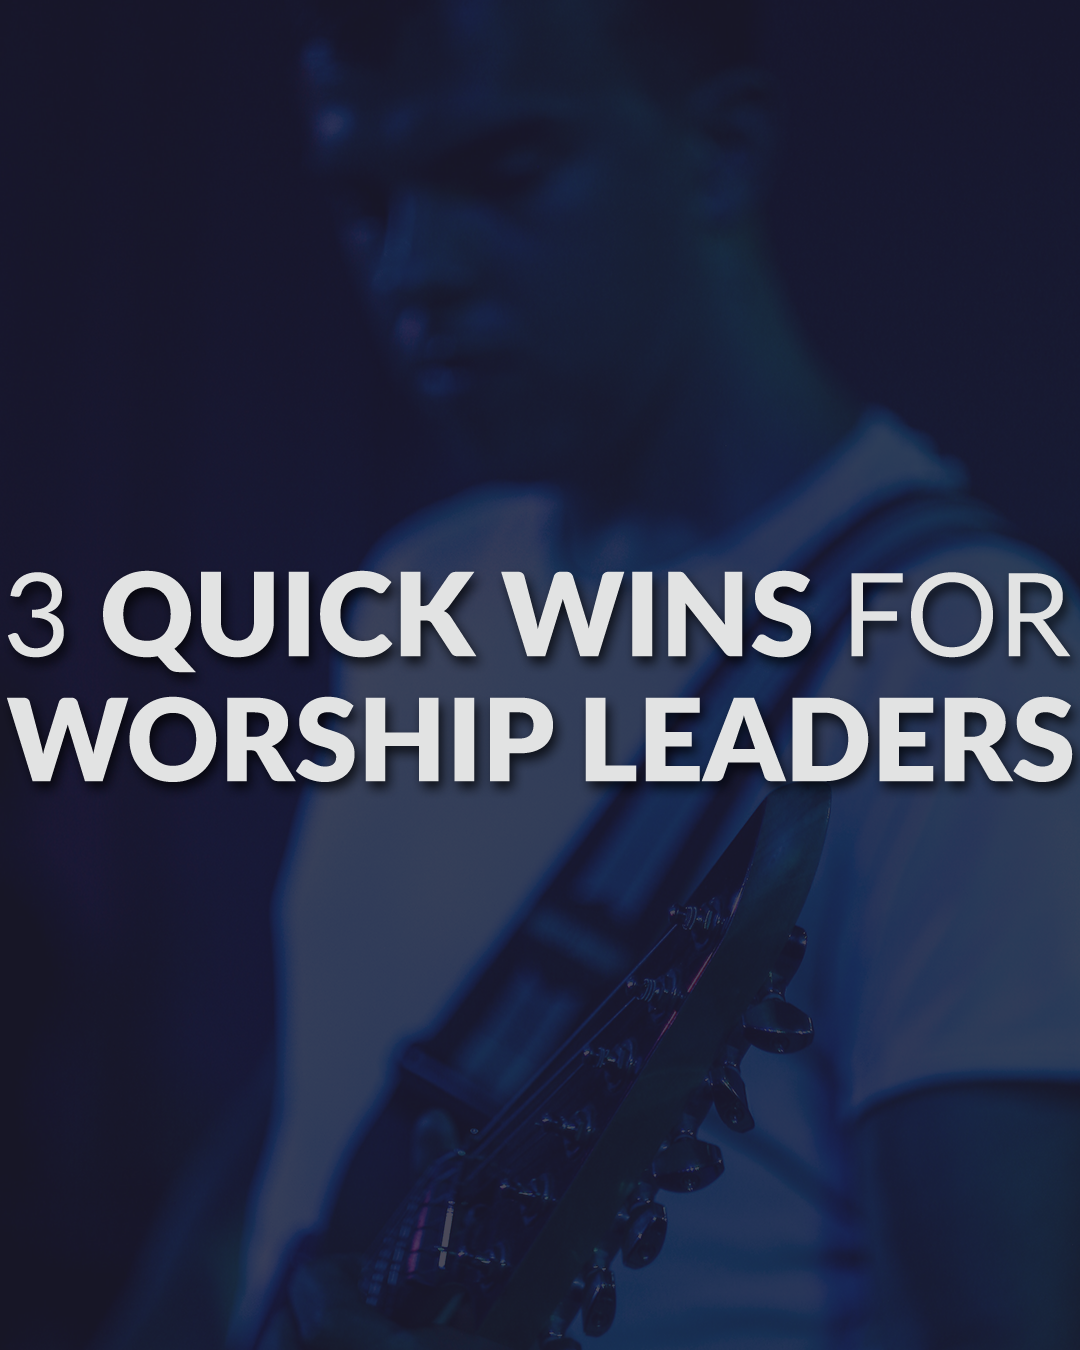 3 Quick Wins For Worship Leaders